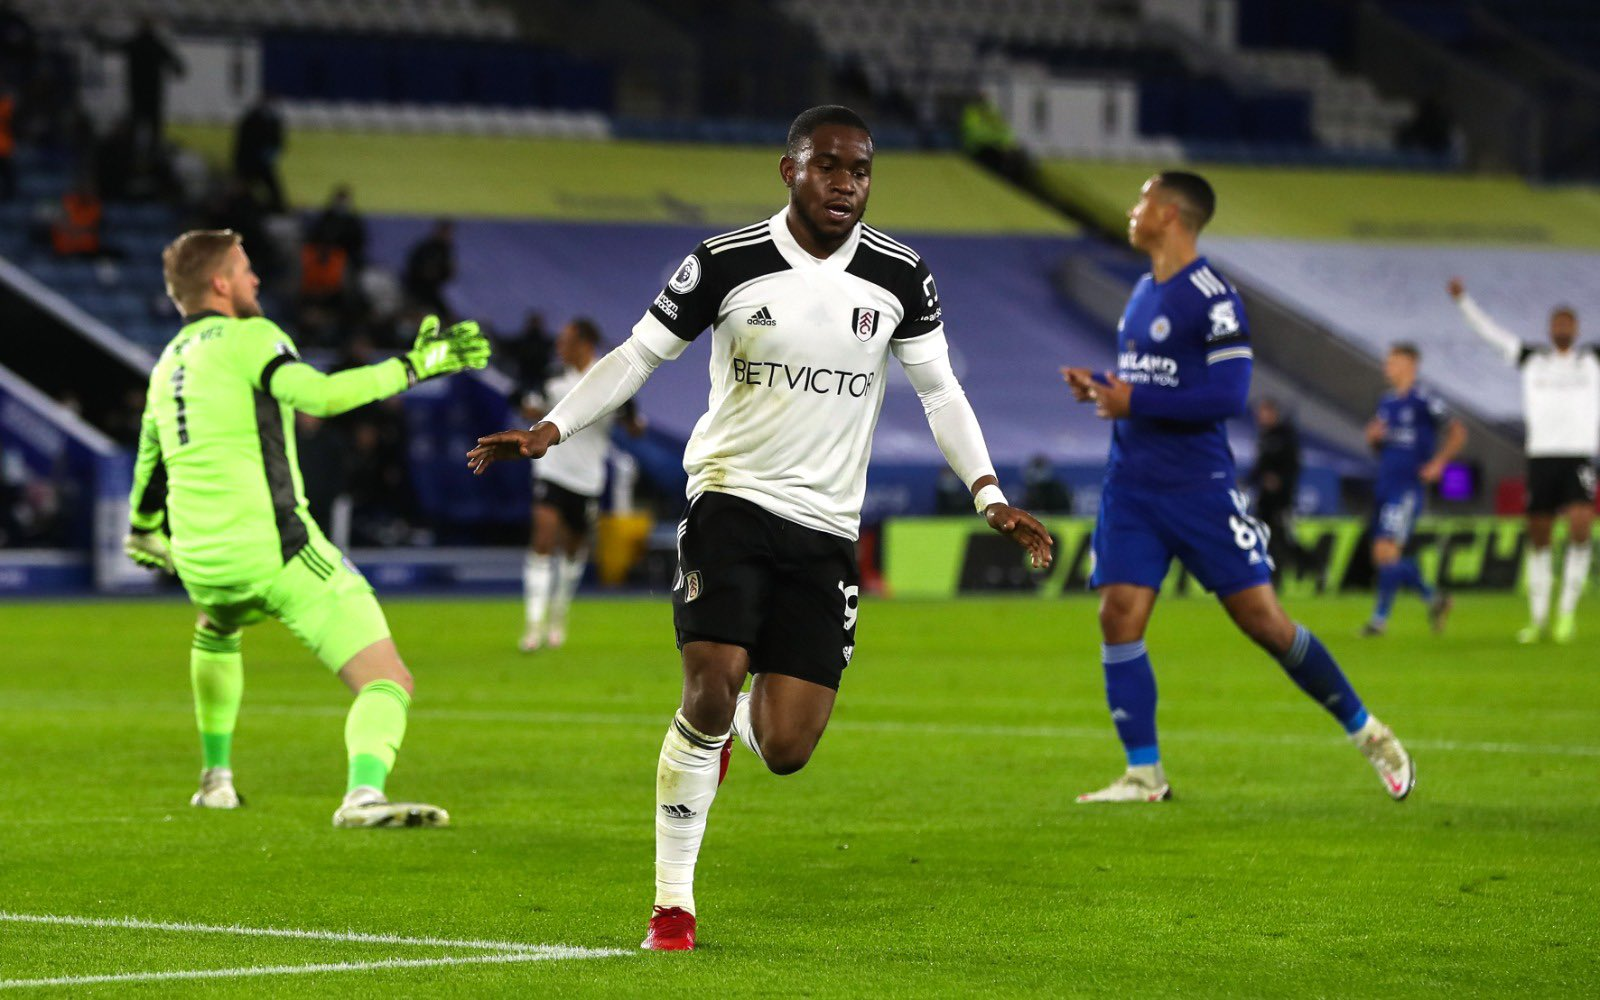 Leicester City vs. Fulham - Football Match Report